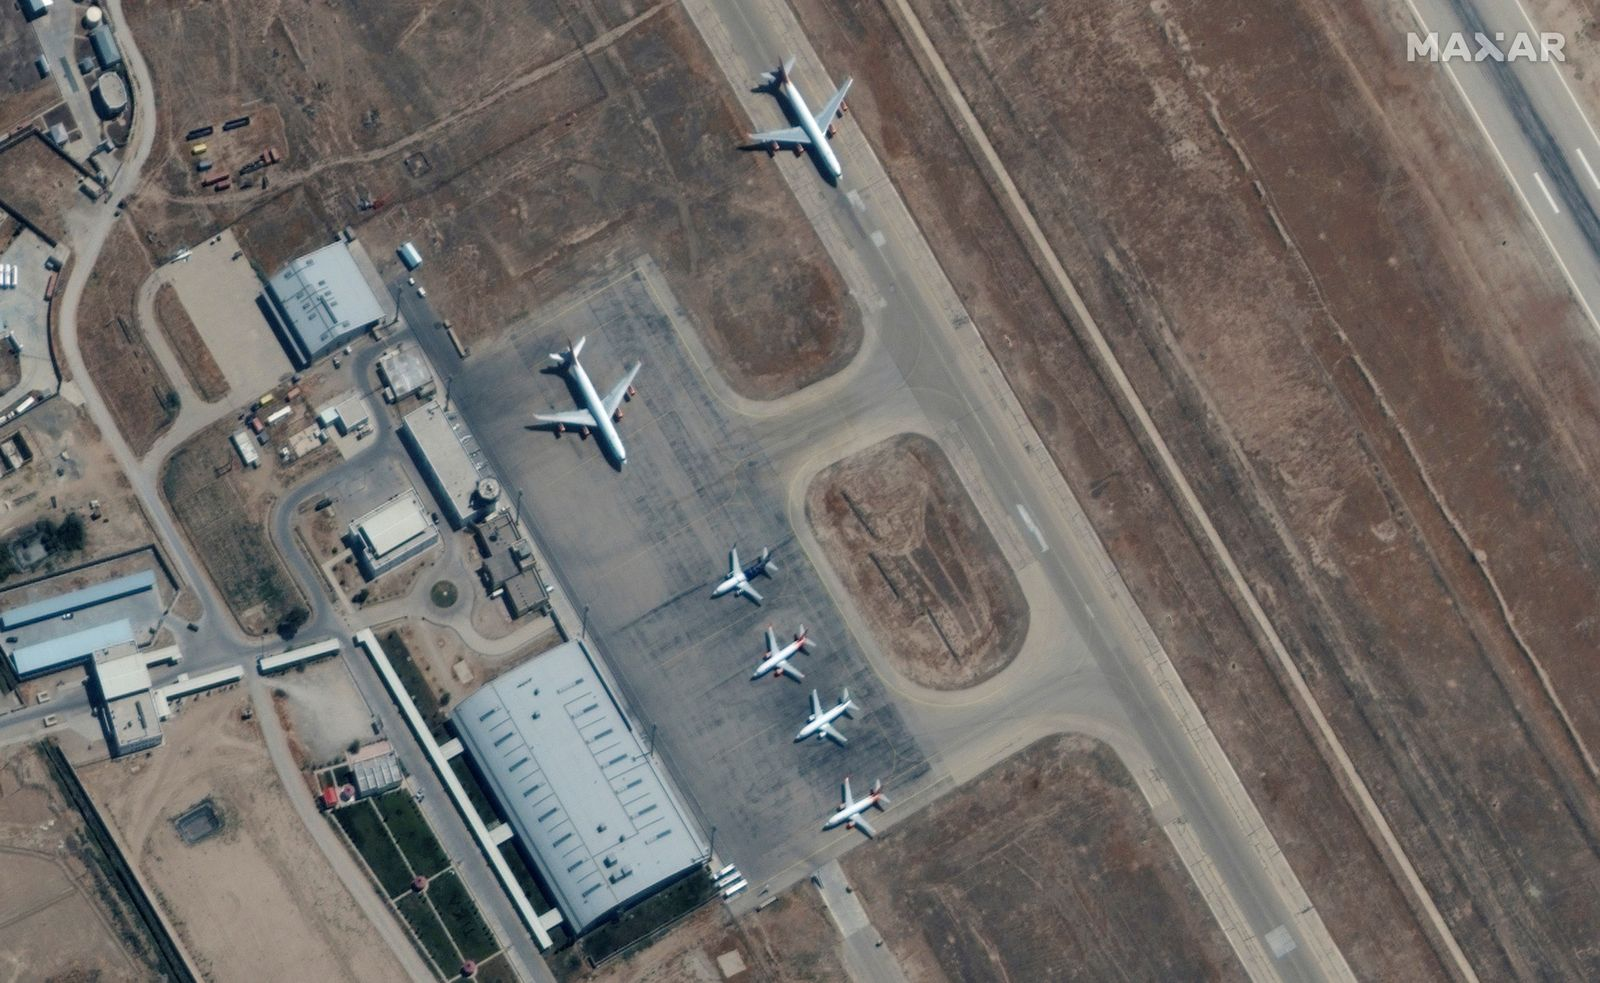 Six commercial airplanes are seen near the main terminal of the Mazar-i-Sharif airport